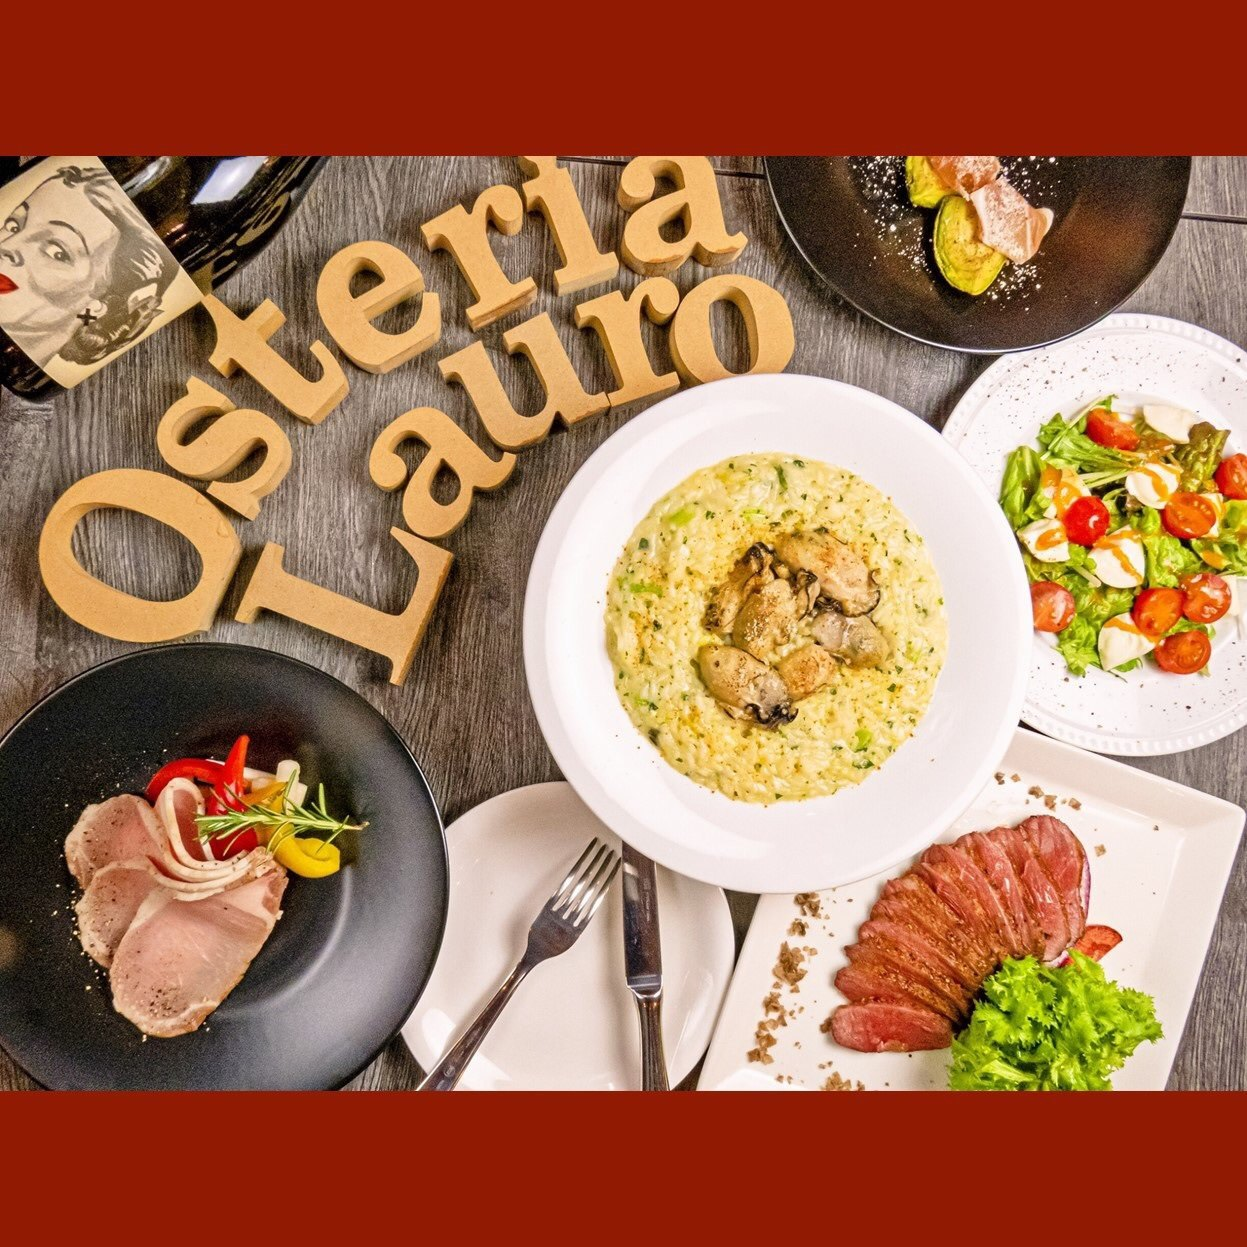 Osteria Lauro 神保町 イタリアンのイメージ写真